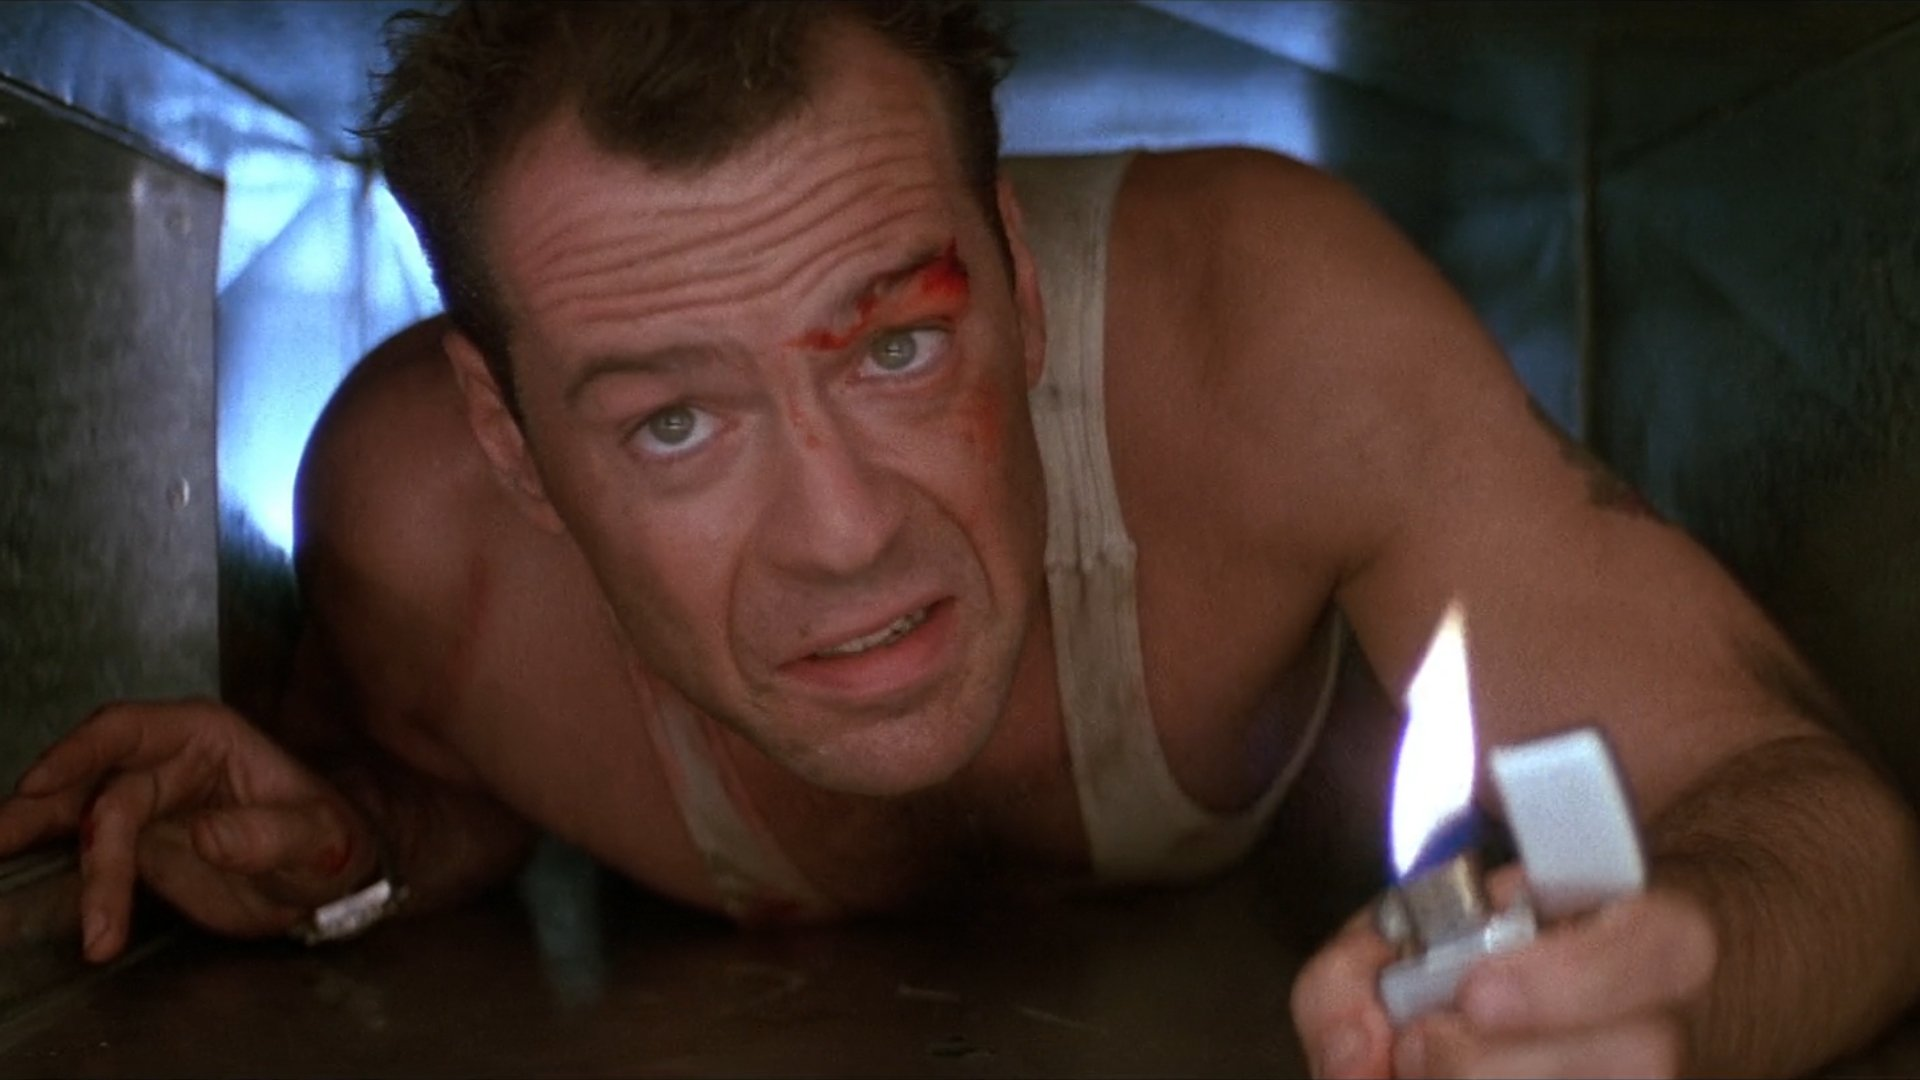 For the 30th anniversary of the film's release, 'The Onion' looks back at 'Die Hard.' https://t.co/d8FeK5hnZl